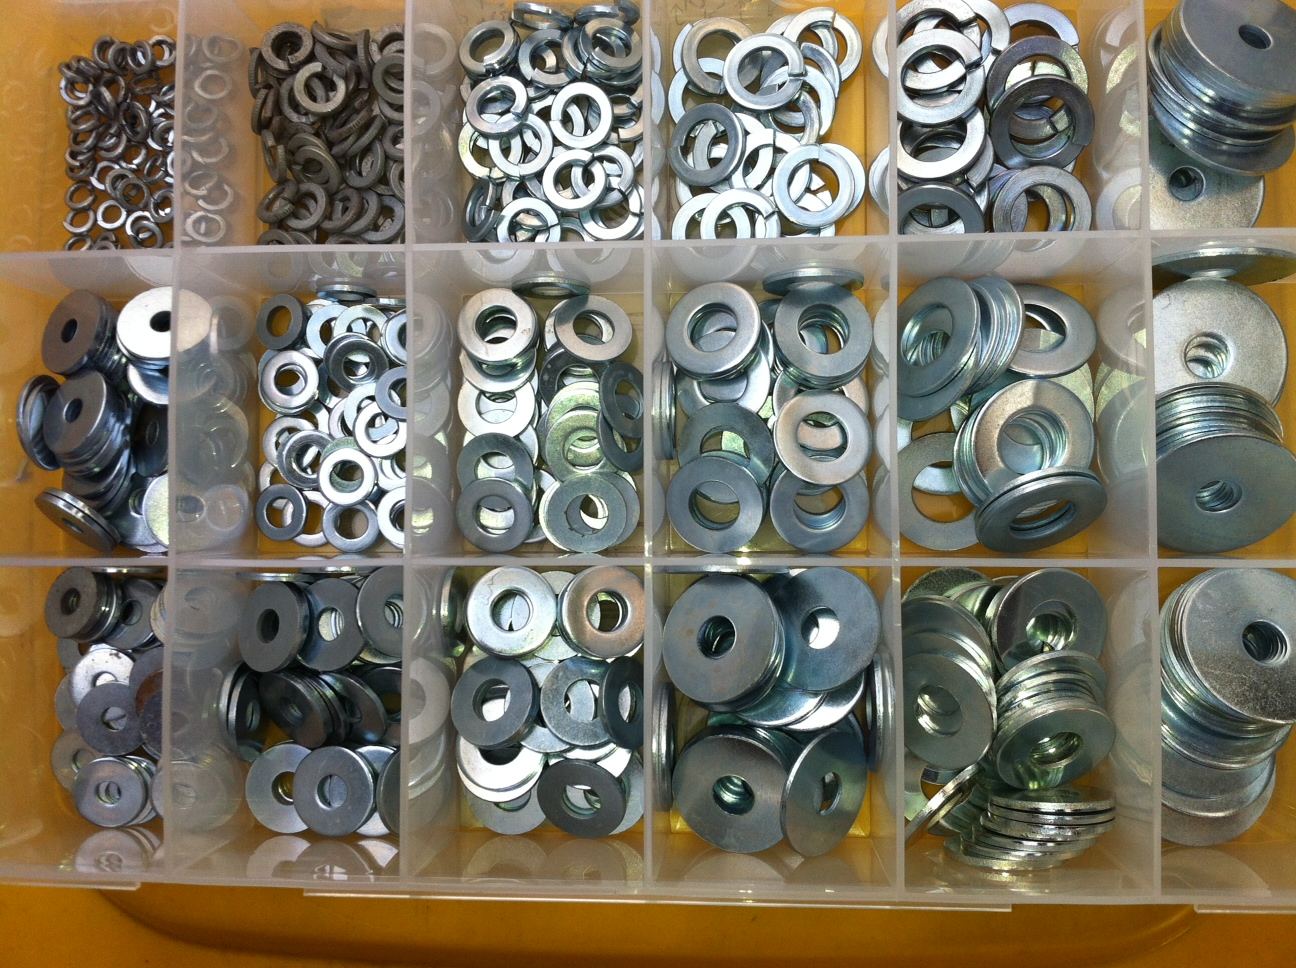 B1052 Kit - Flat/spring washer ascortment of 18 sizes